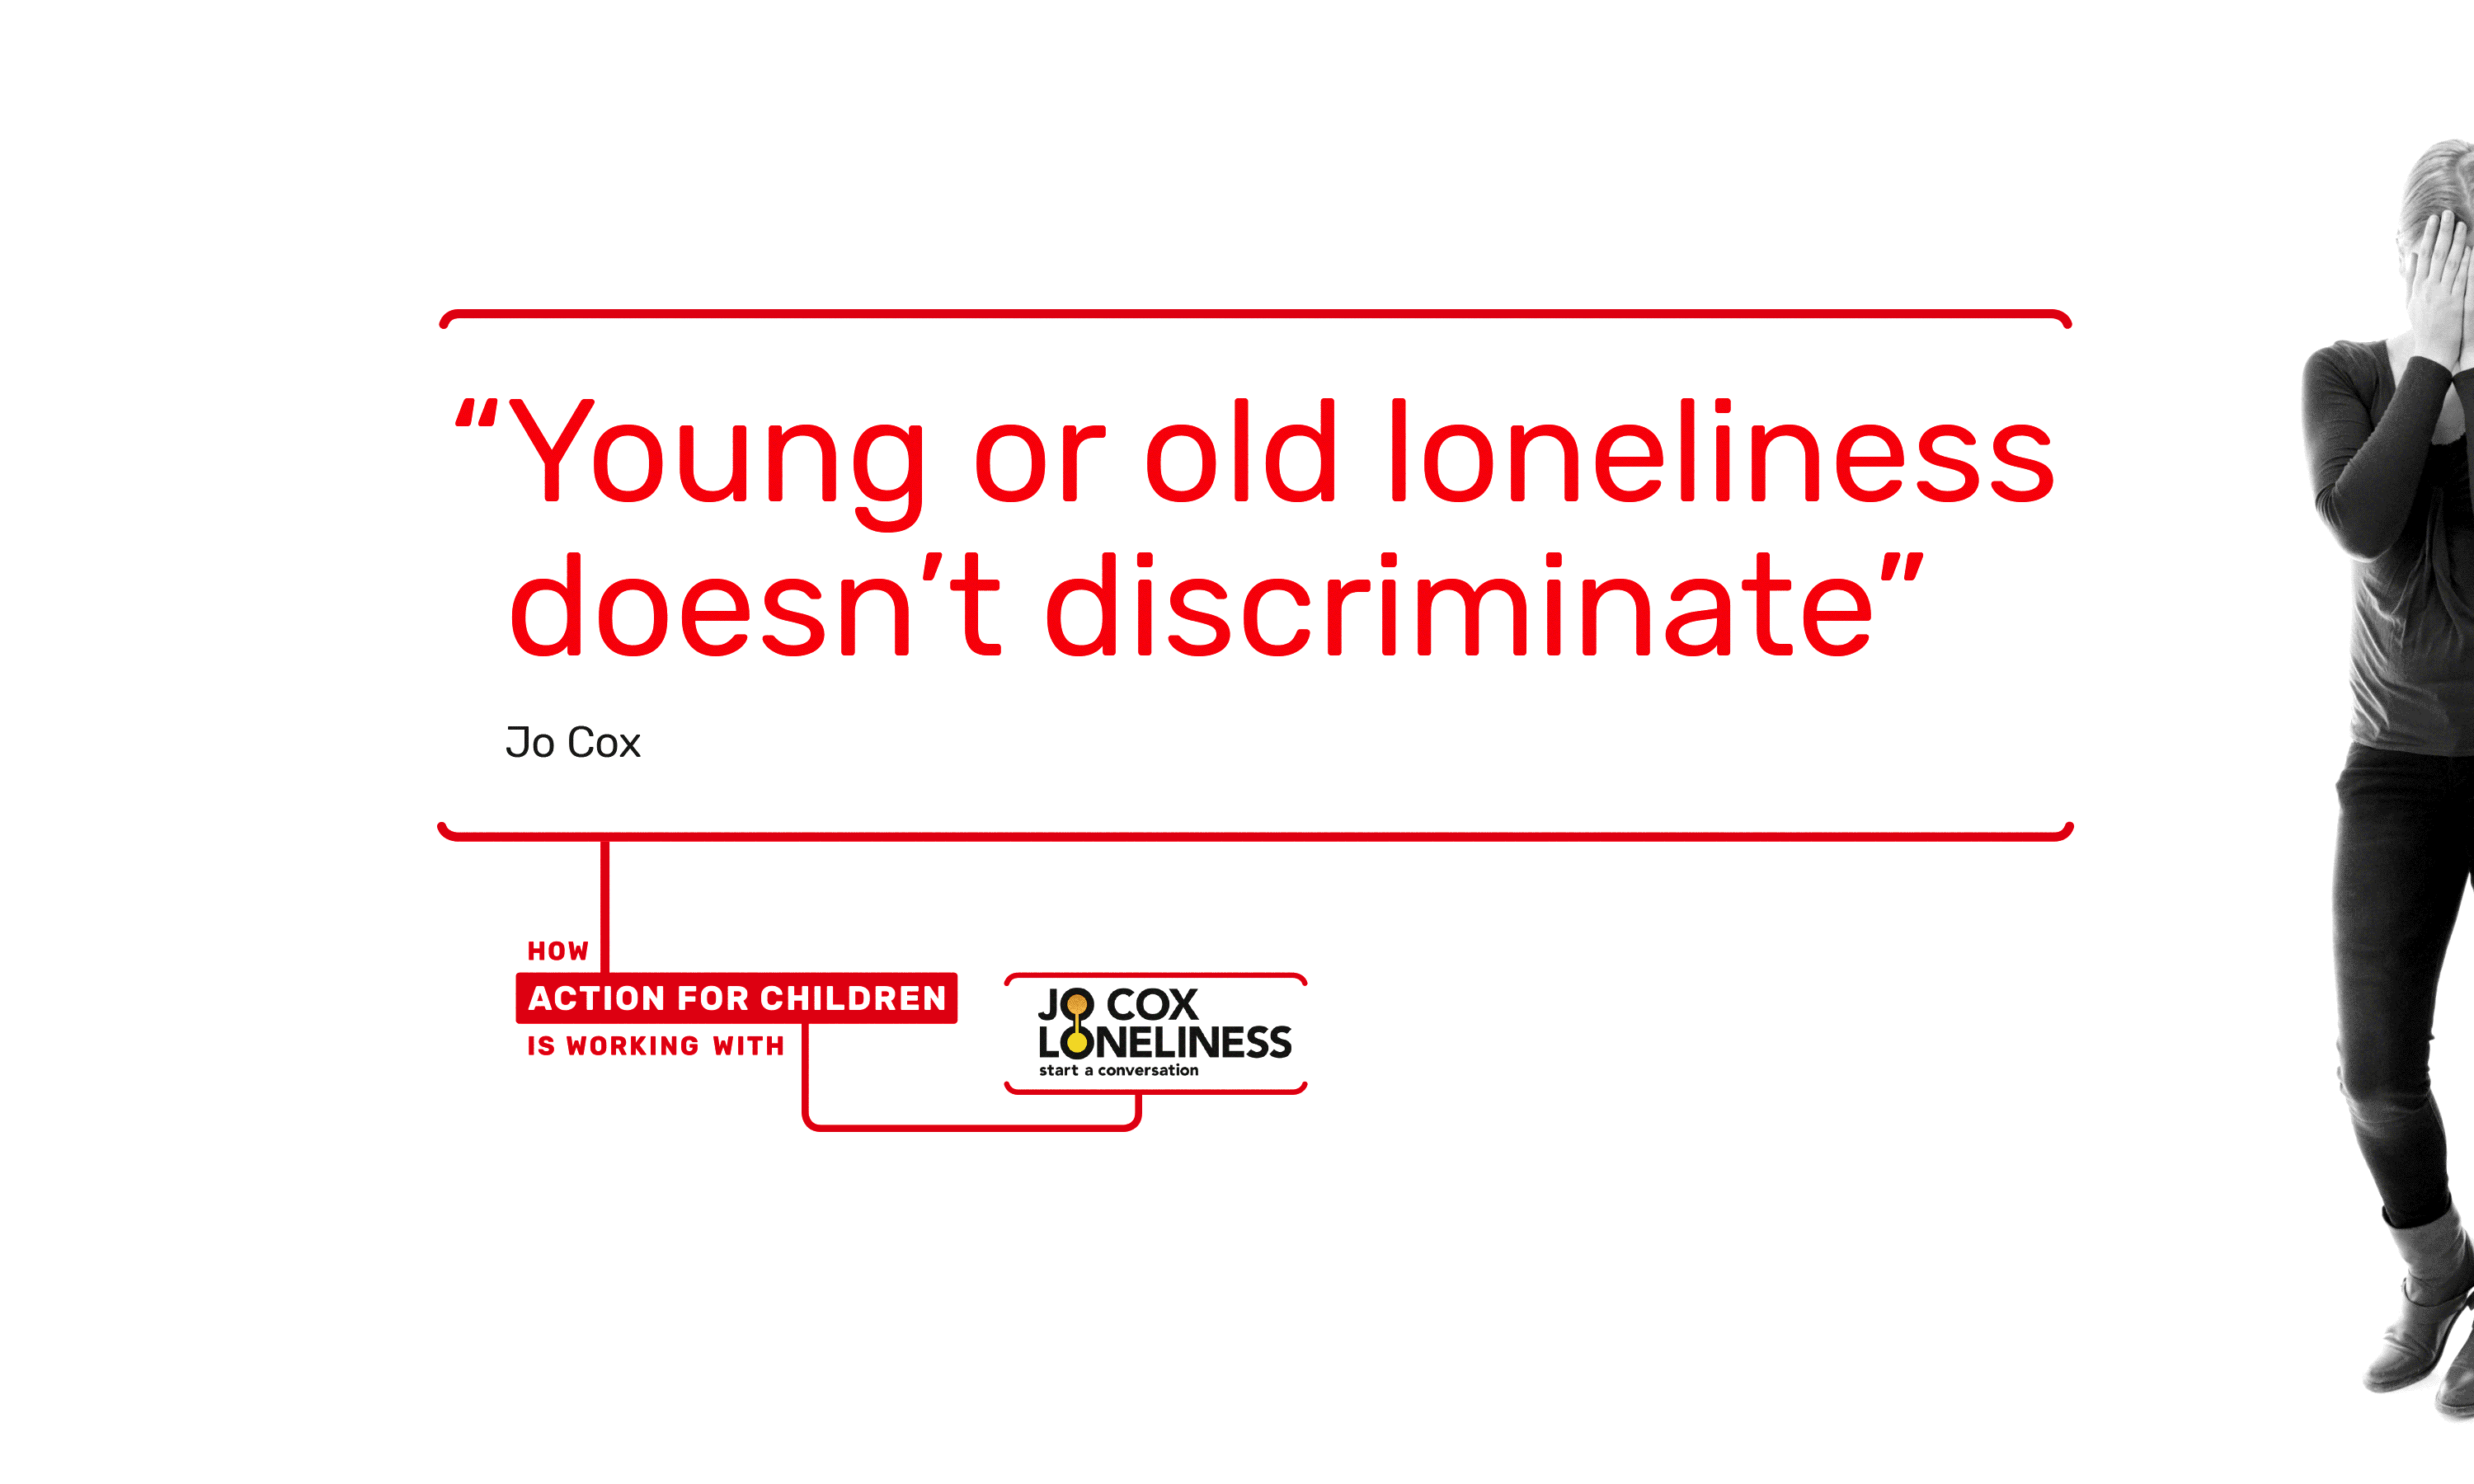 Brand campaign by Neon - designed by Dana Robertson - Action for children Jo Cox loneliness awareness campaign - Posters 6